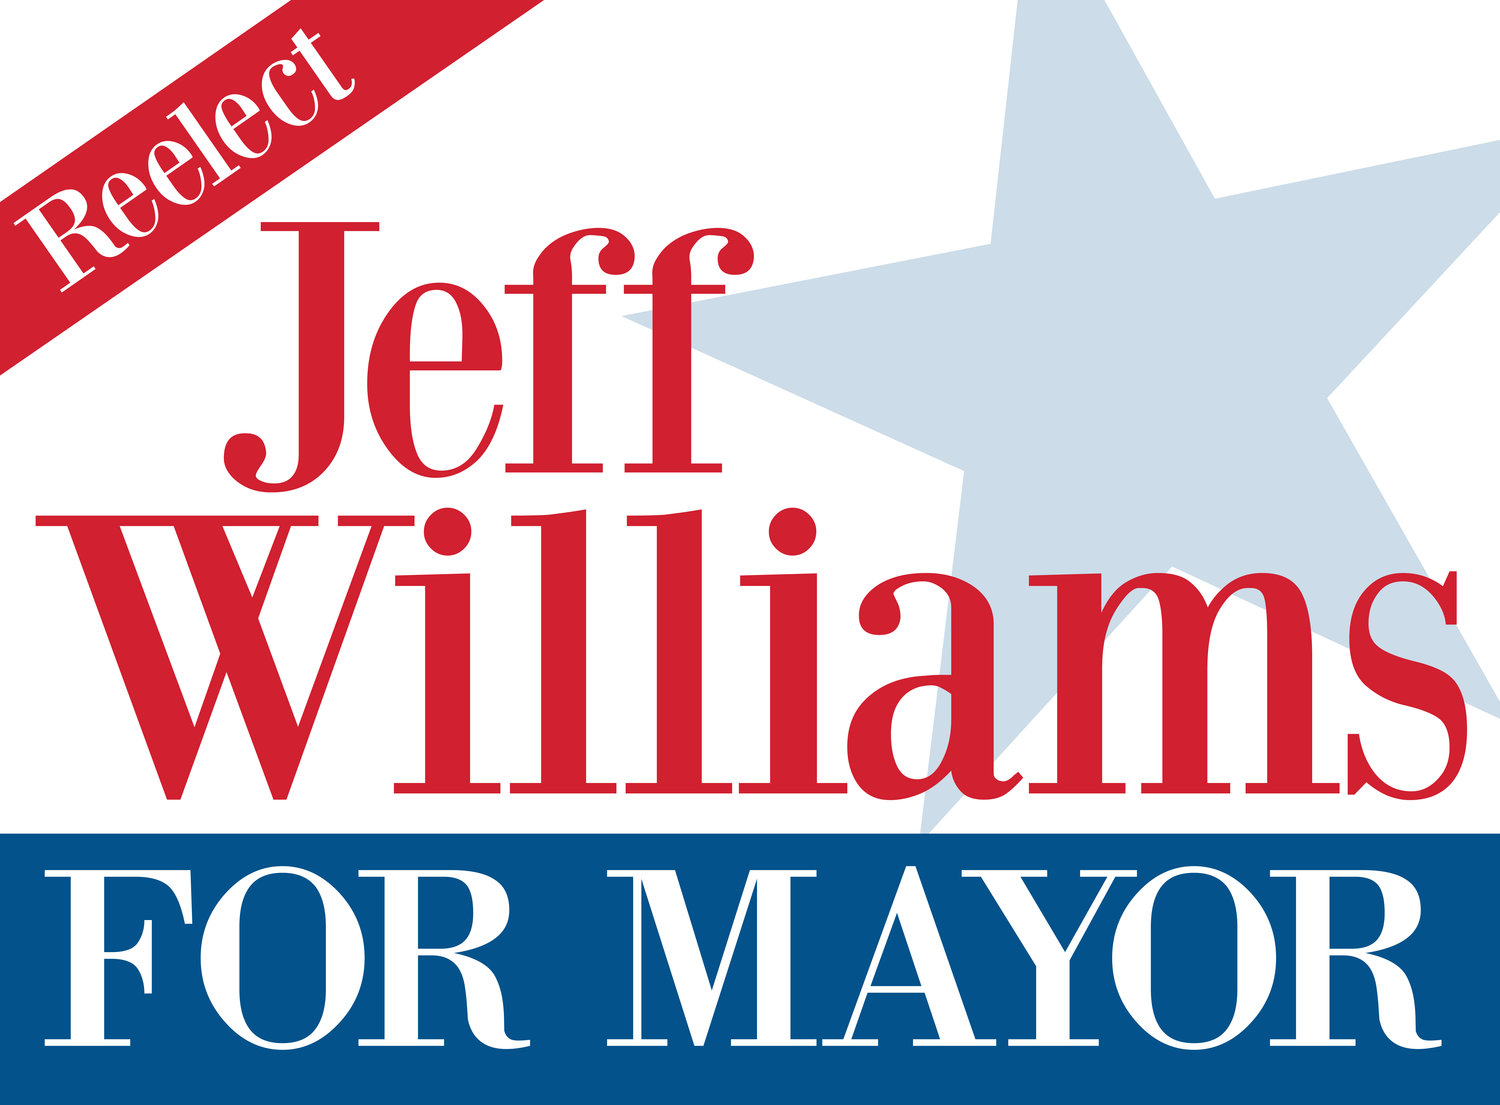 Reelect Jeff Williams For Mayor